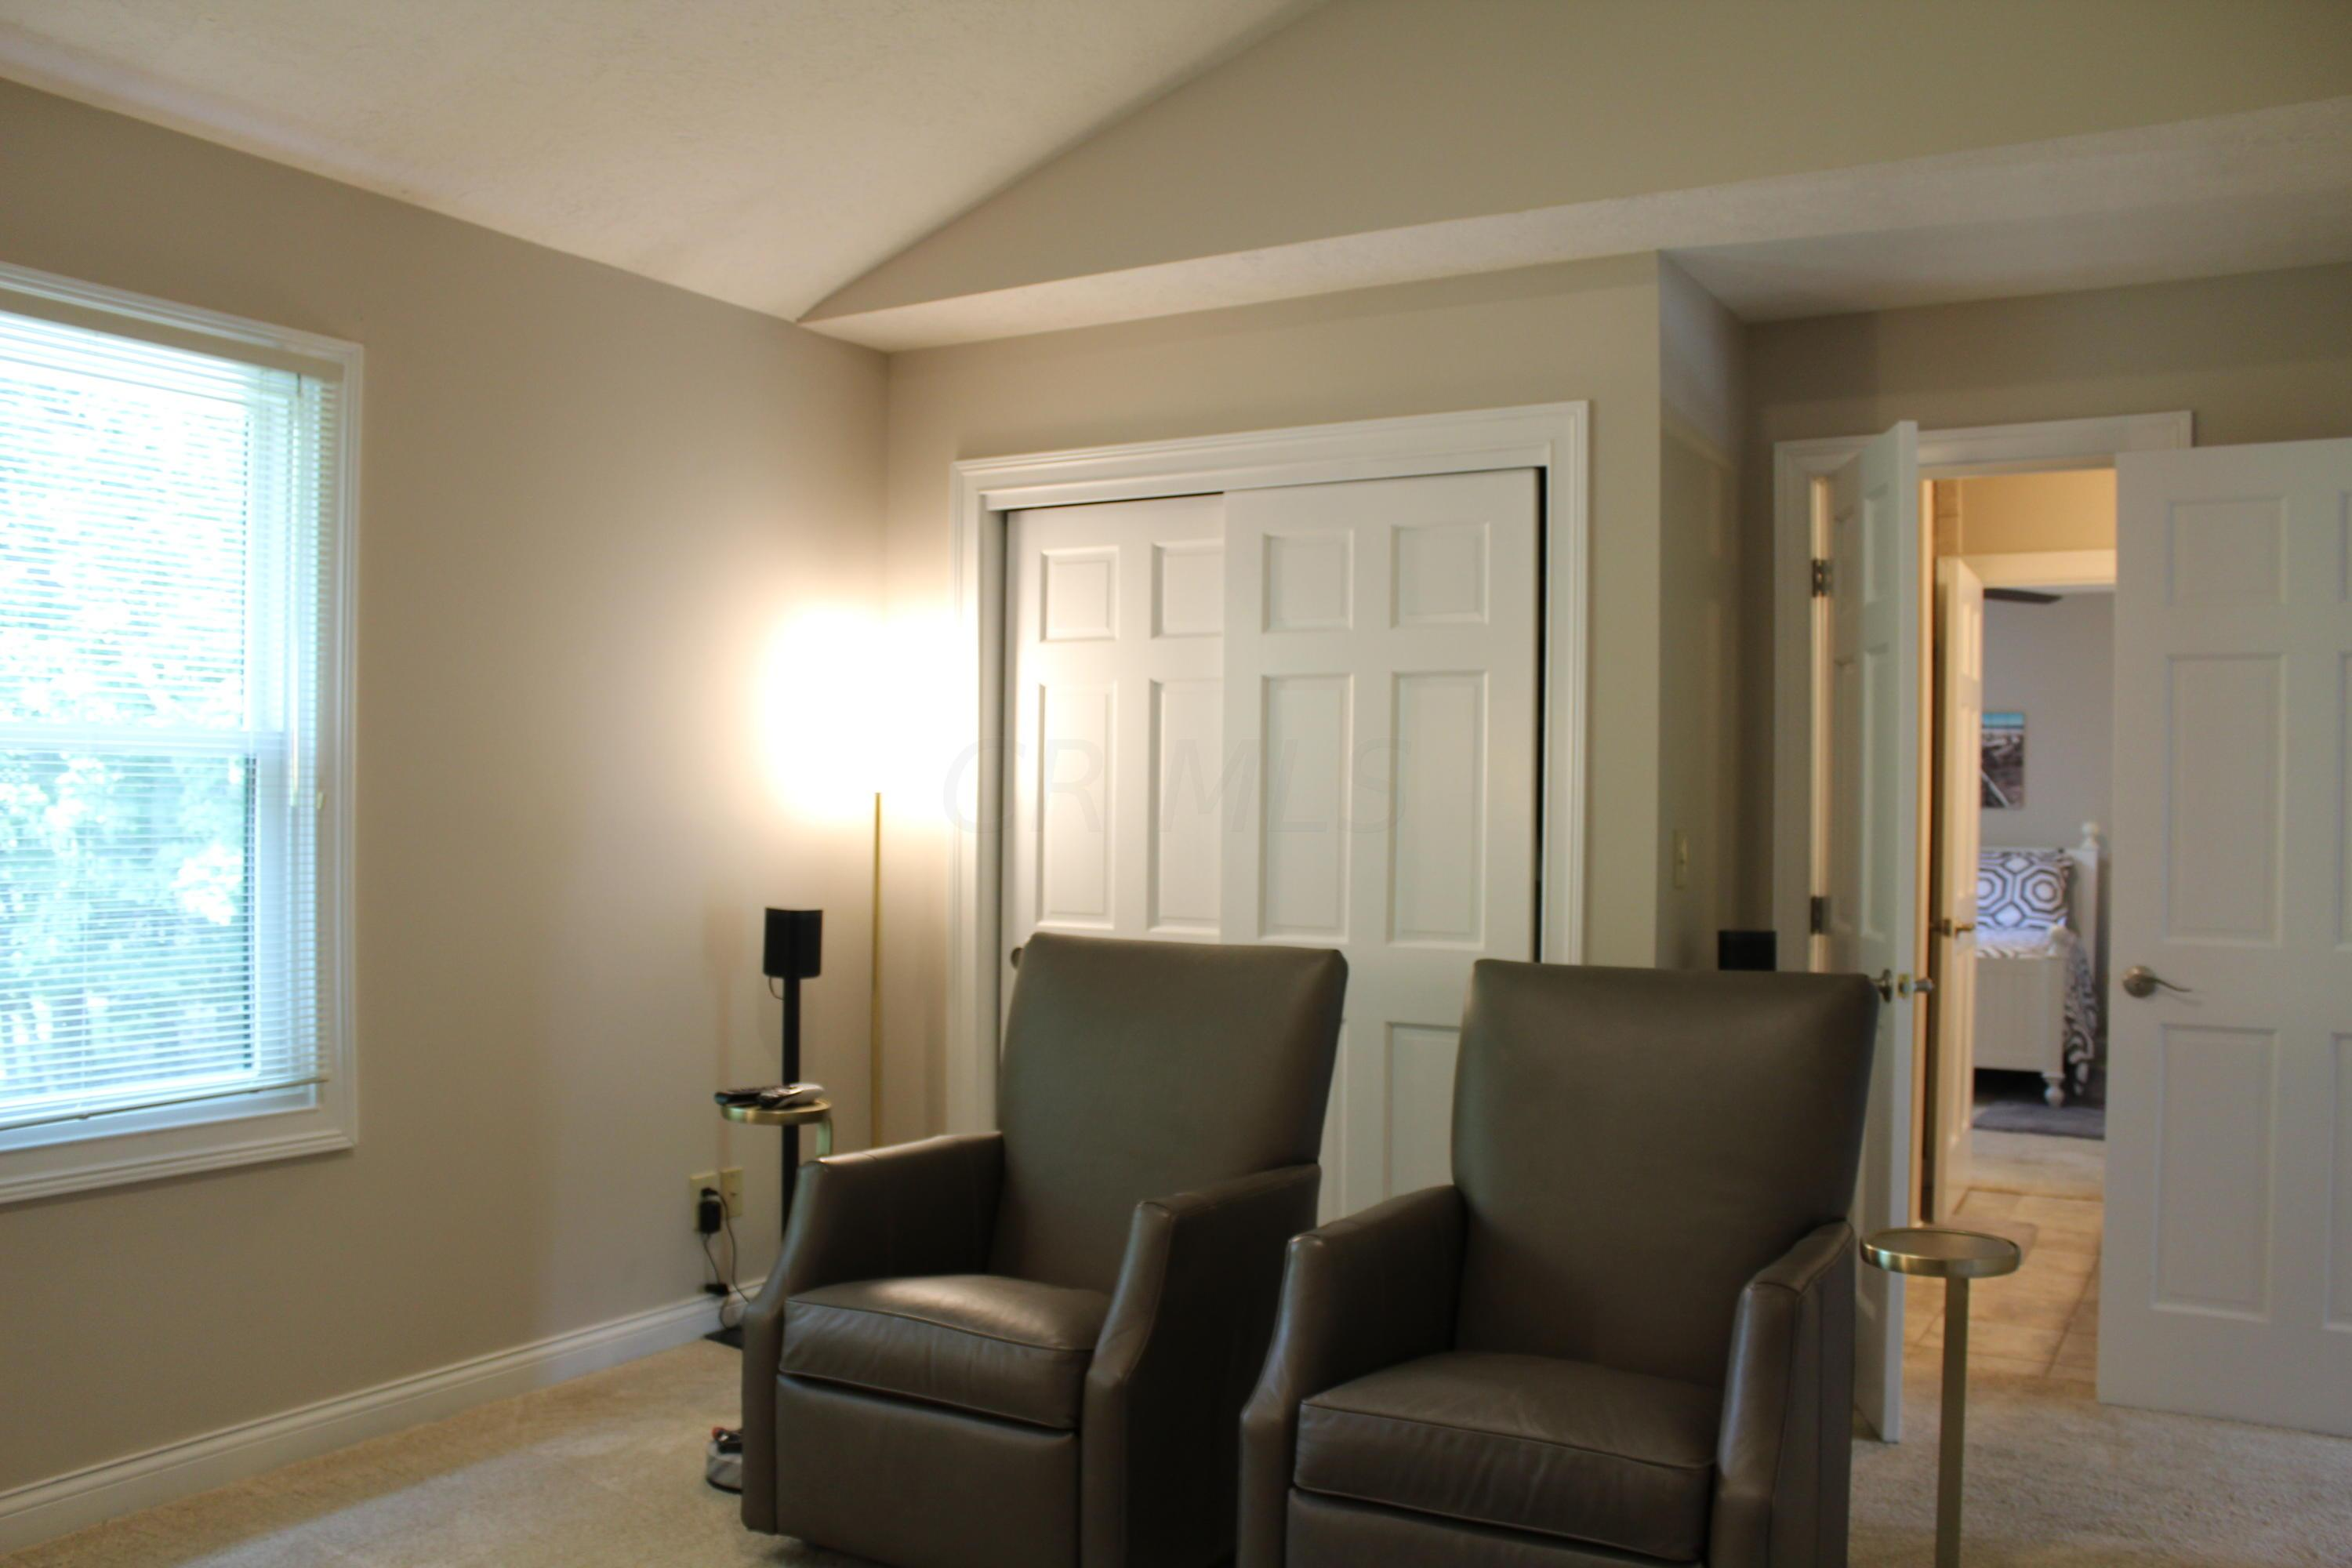 Bedroom #3 in back of house